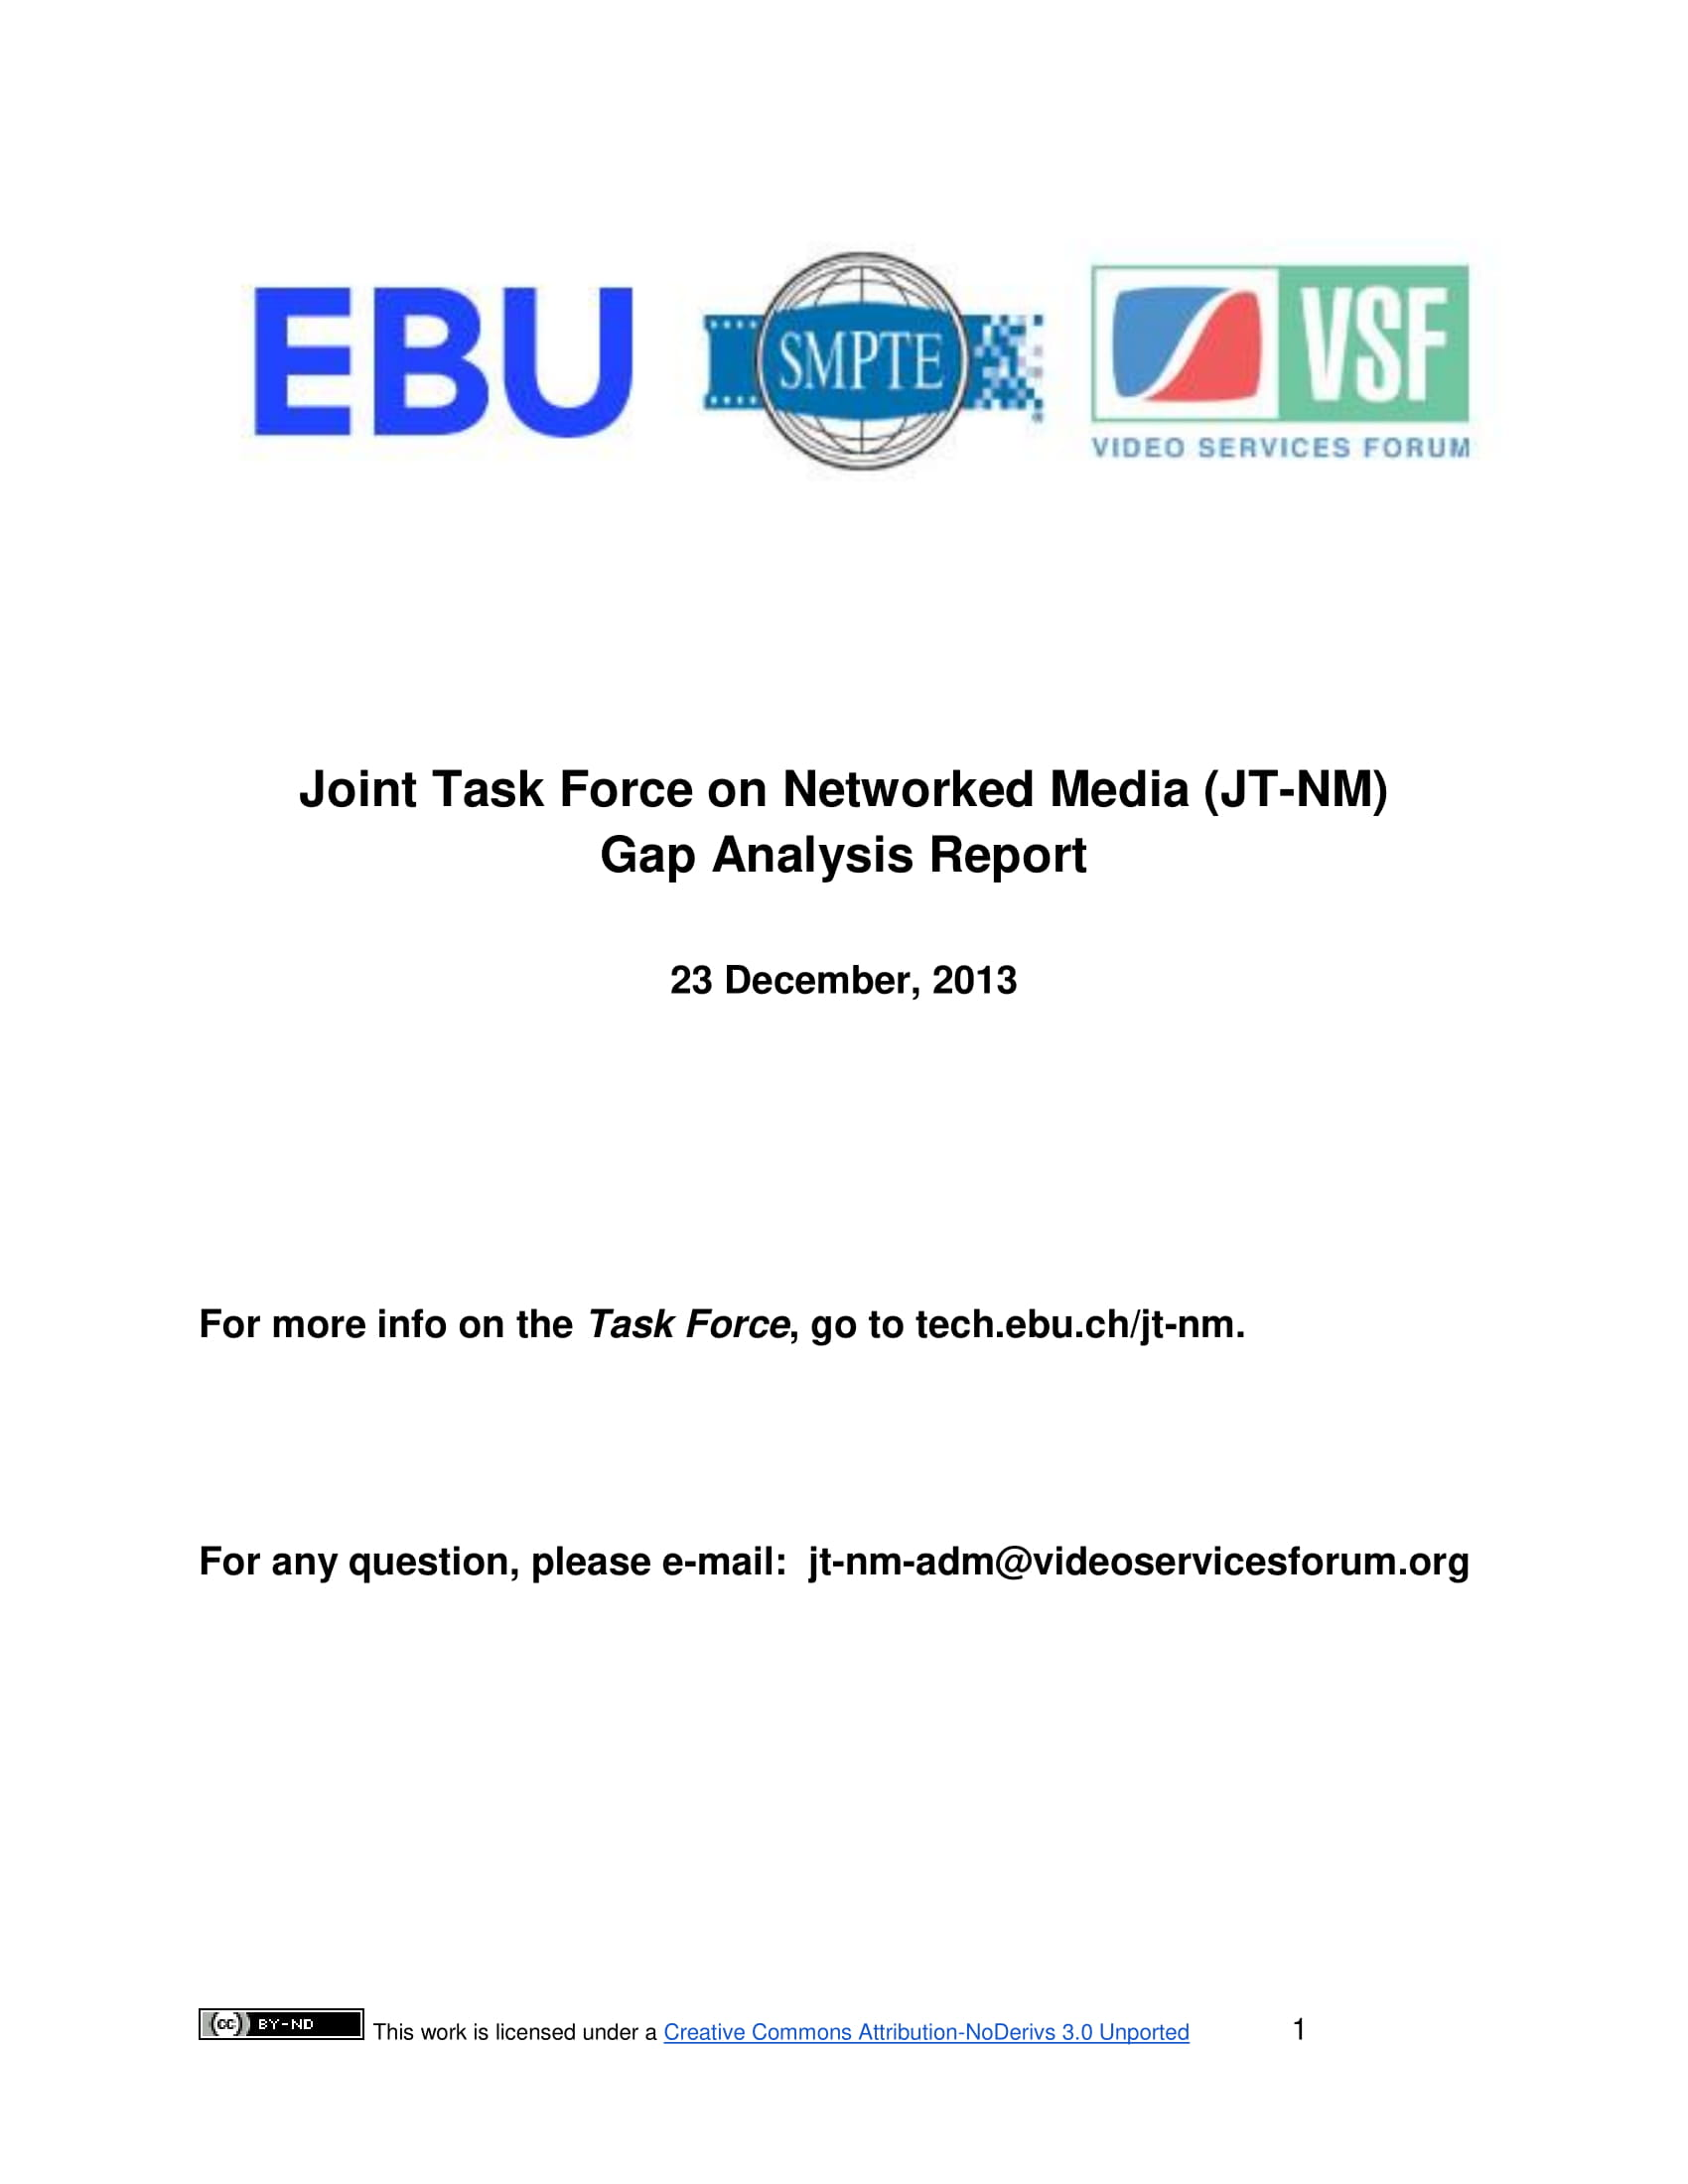 joint tasked force and network media gap analysis report example 001